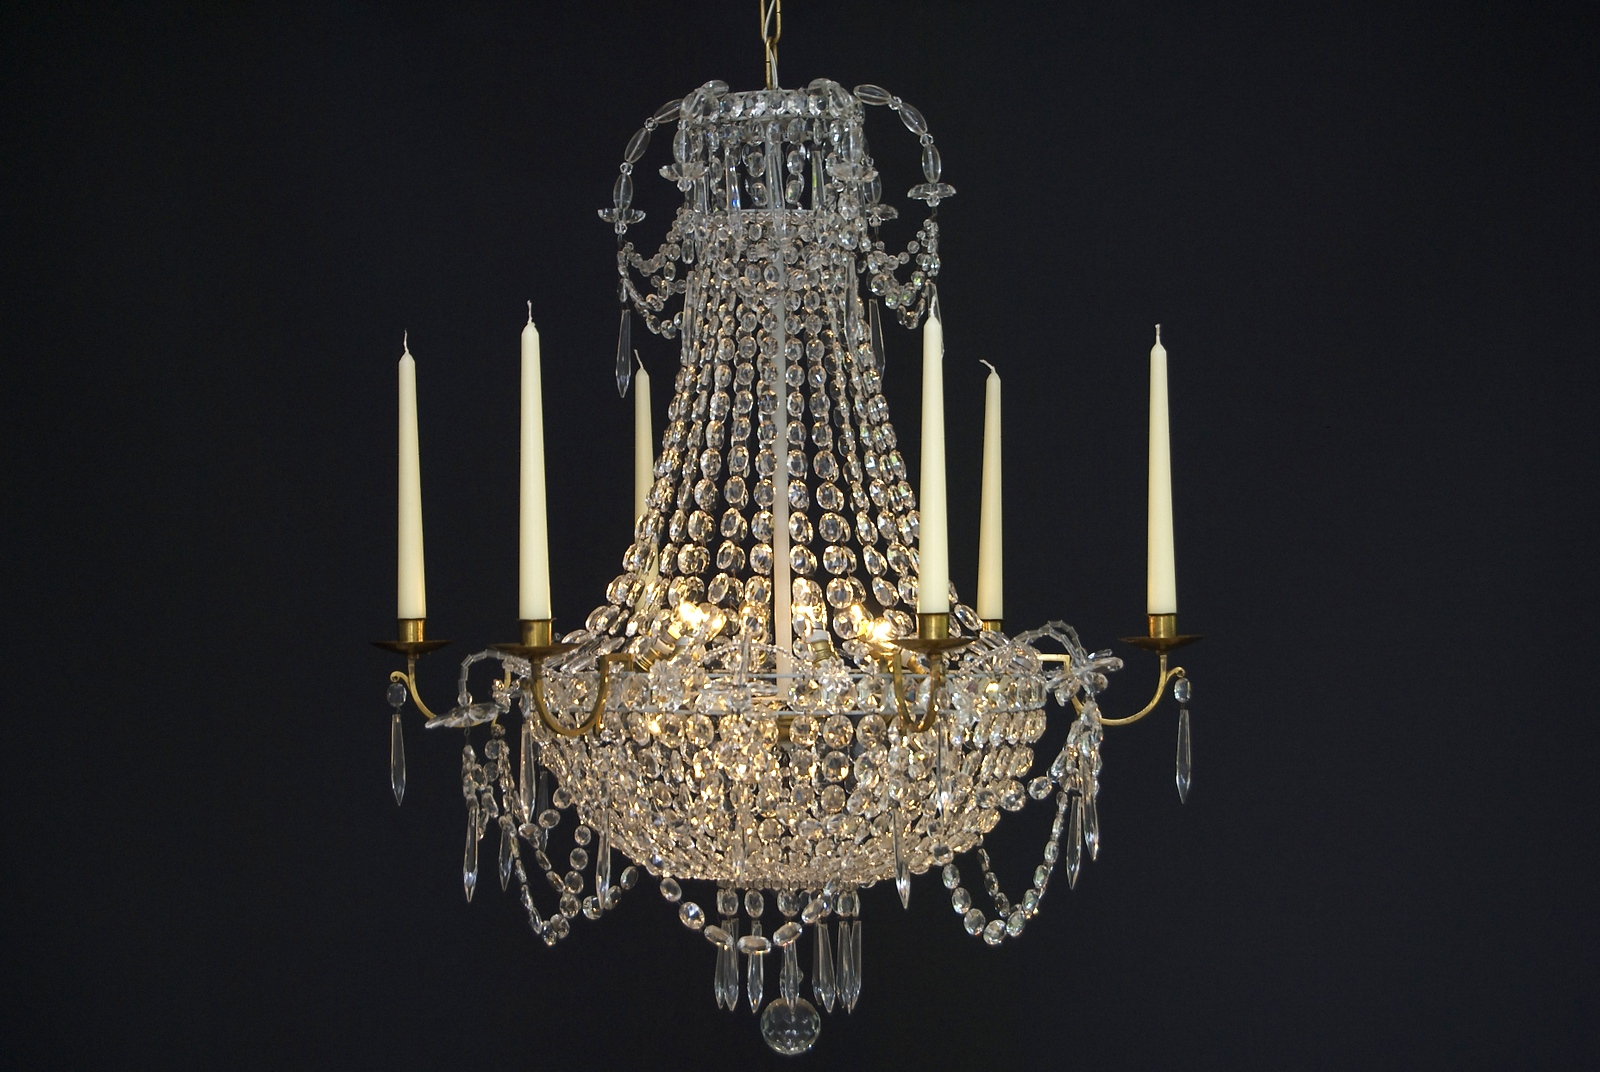 A 20th century French chandelier with 9 light and 6 candles